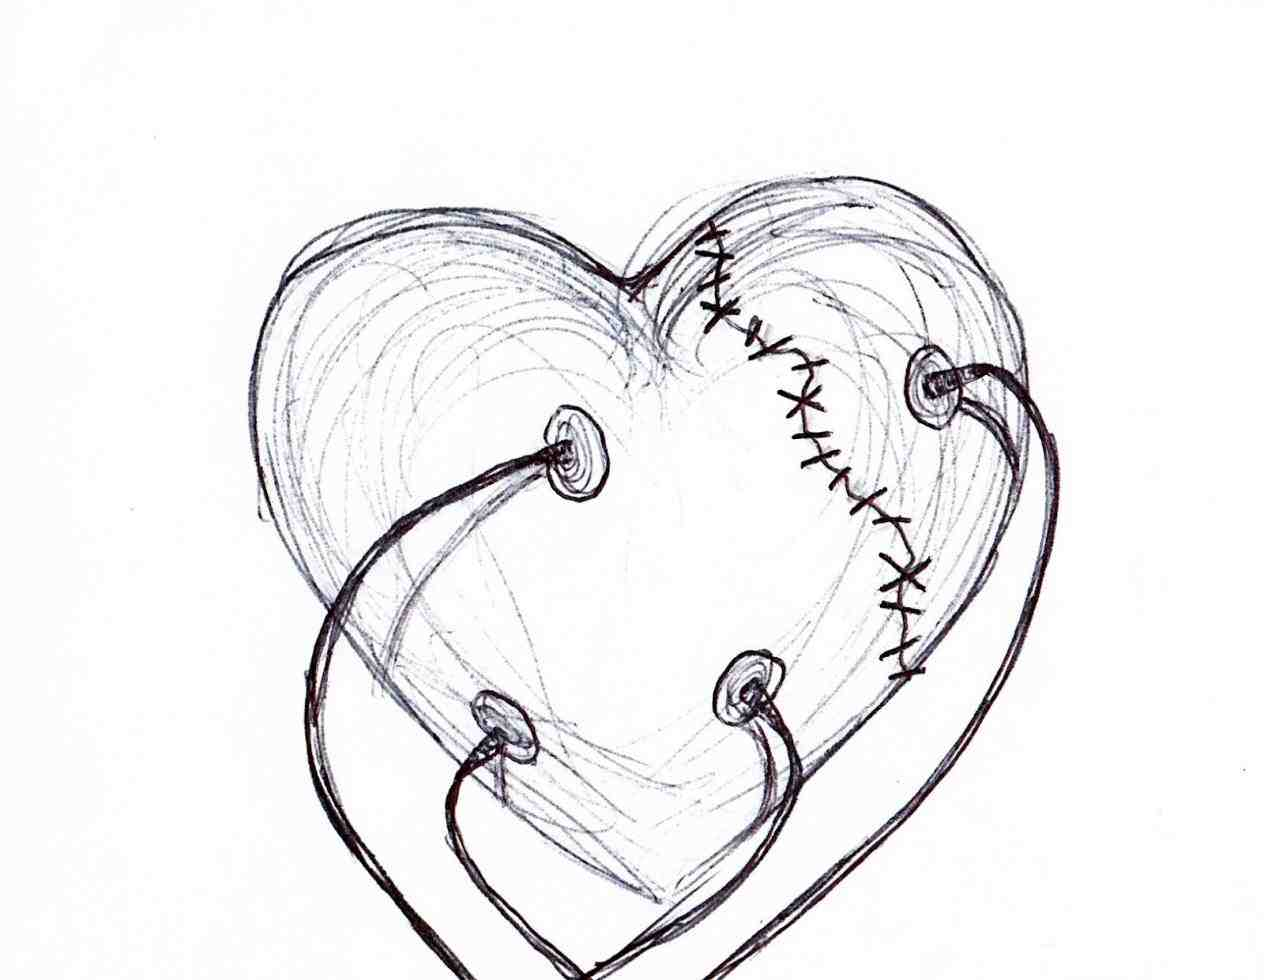 1264x980 Easy Drawings Of Broken Hearts With Wings